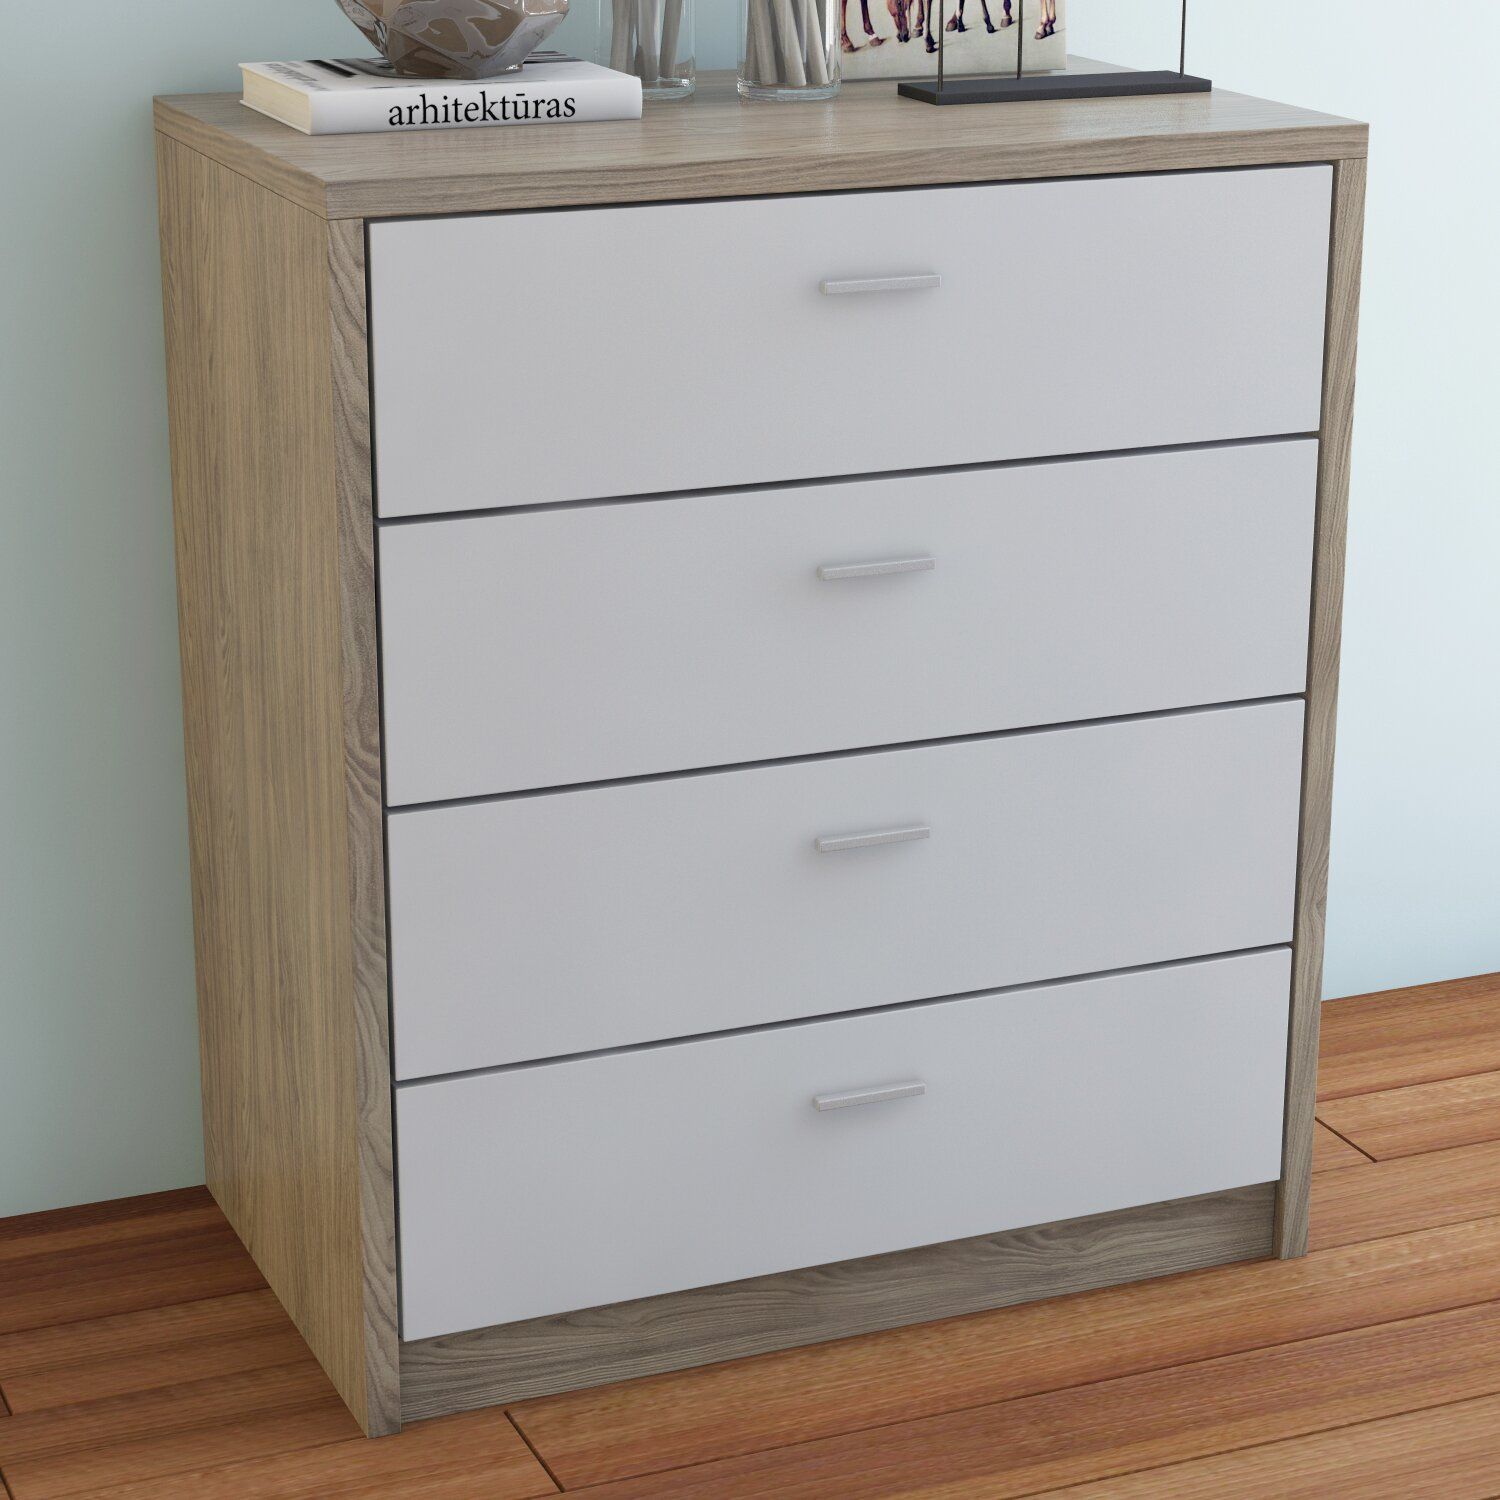 riley ave jade 4 drawer chest of drawers reviews. Black Bedroom Furniture Sets. Home Design Ideas